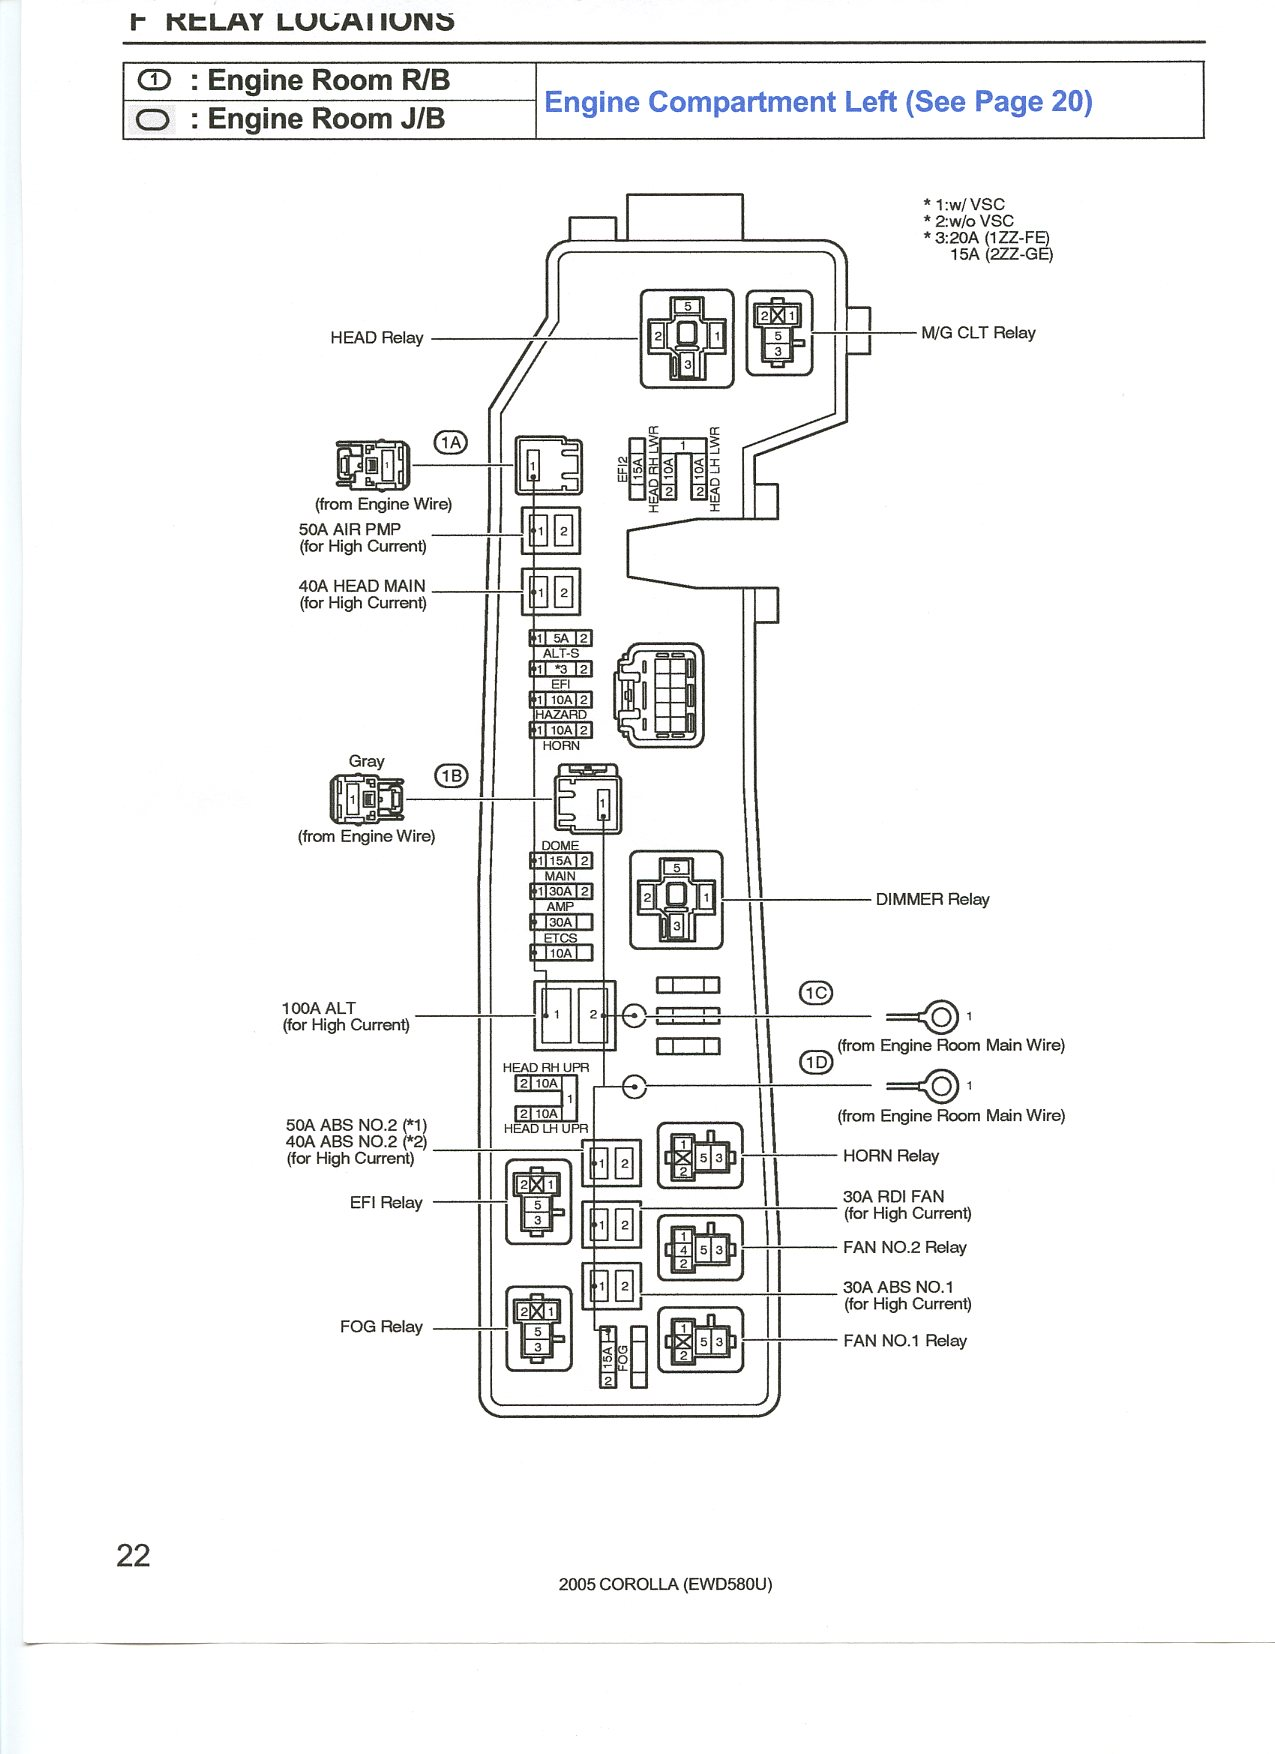 2004 Toyota Corolla Interior Fuse Diagram Wiring Diagram Reader B Reader B Saleebalocchi It